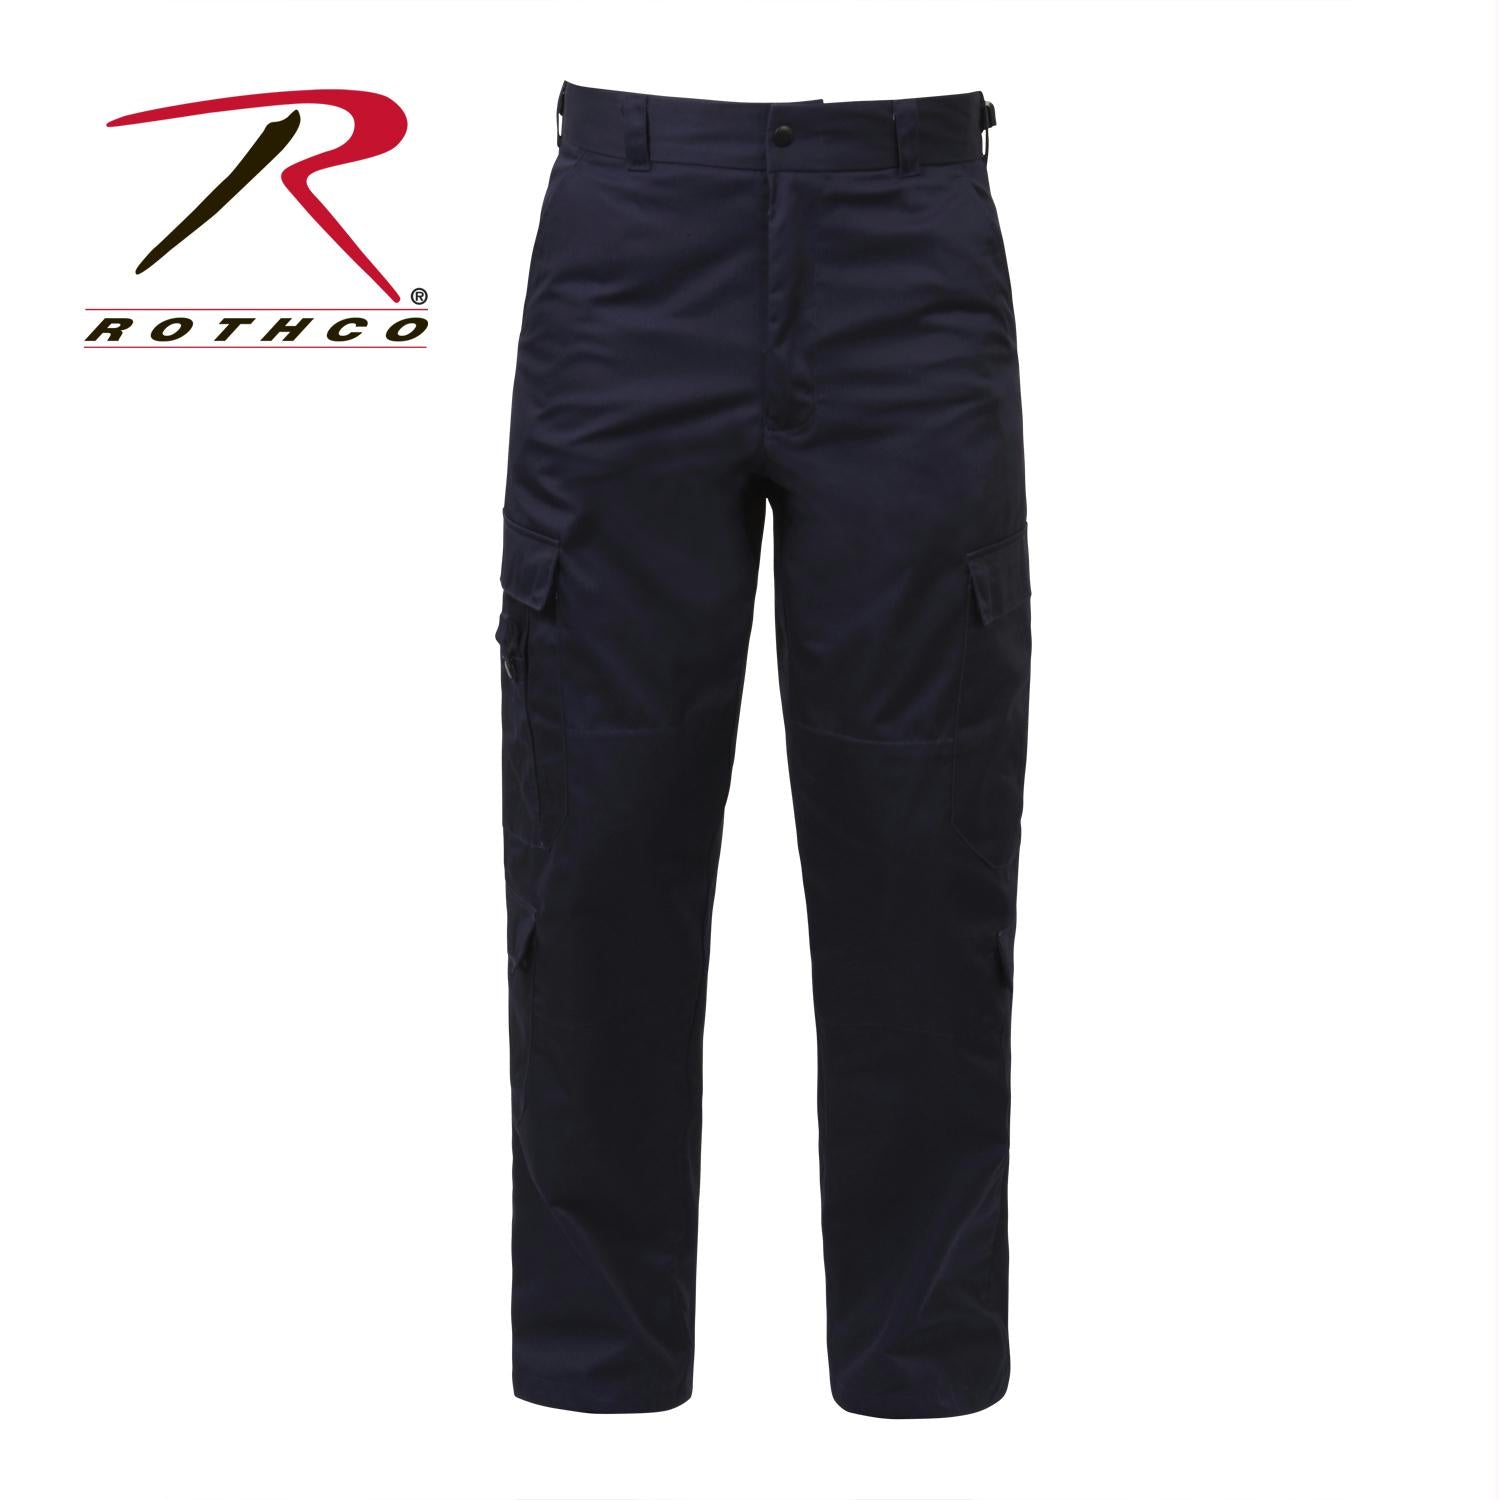 Rothco EMT Pants - Midnight Navy Blue / 3XL